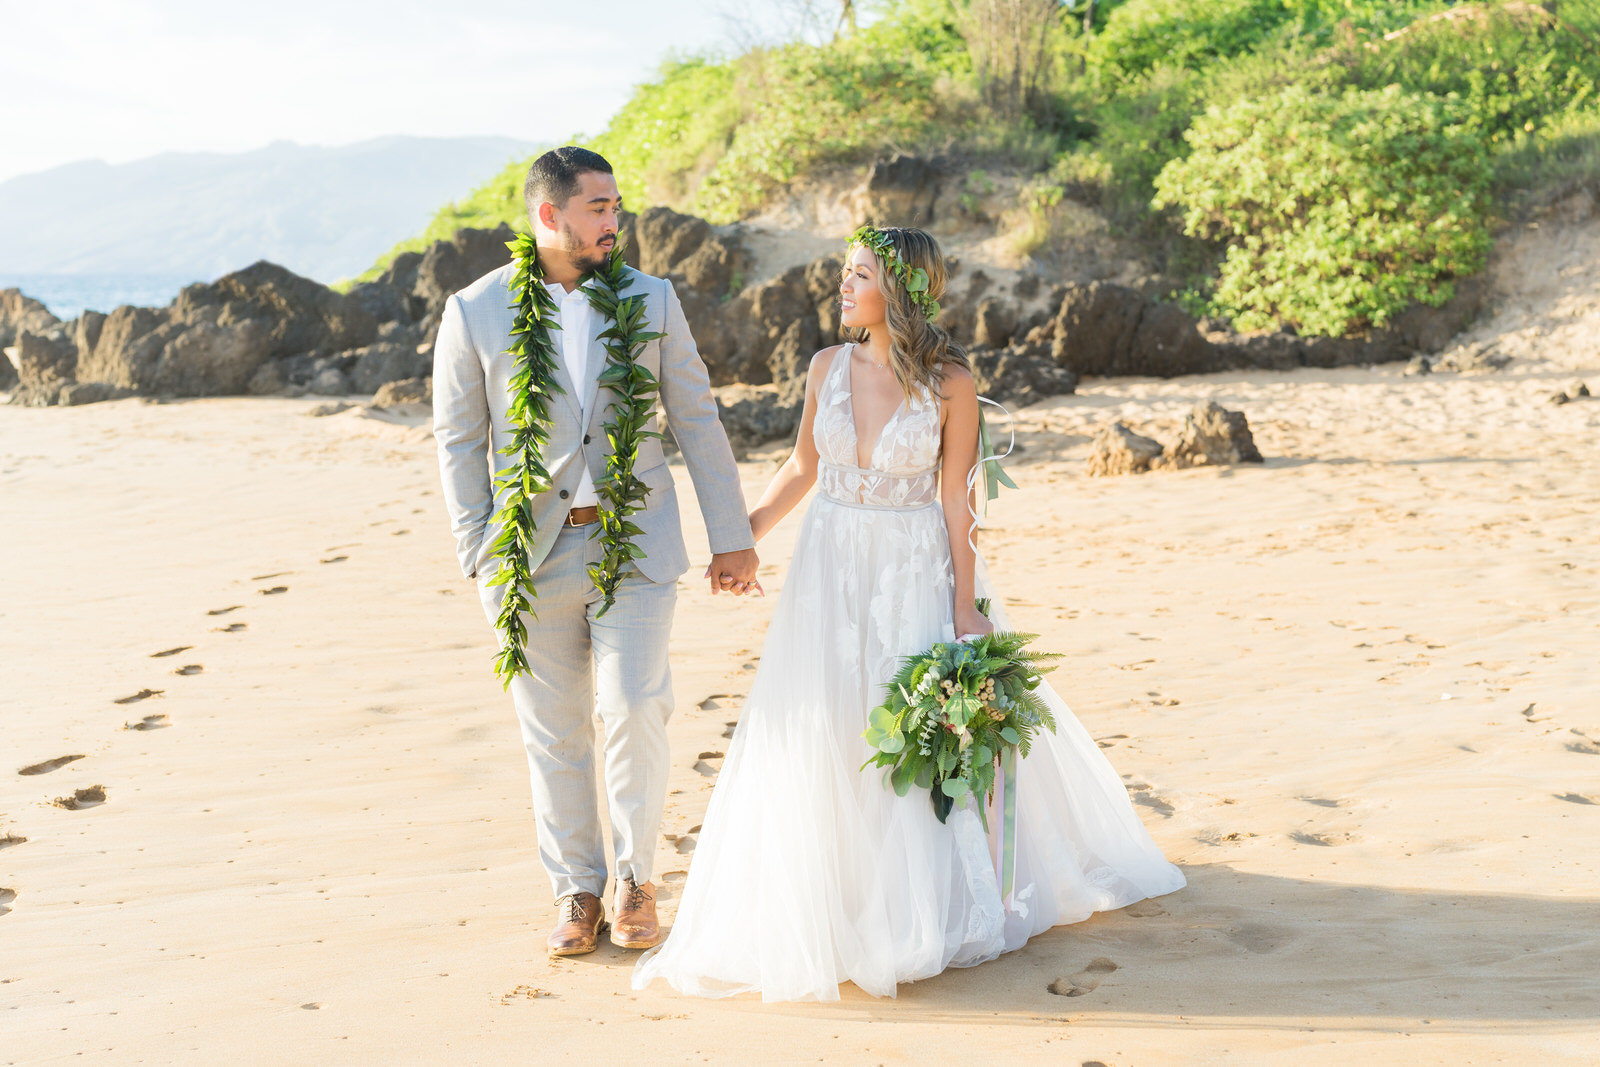 Hawaii wedding photography  in Maui and Oahu